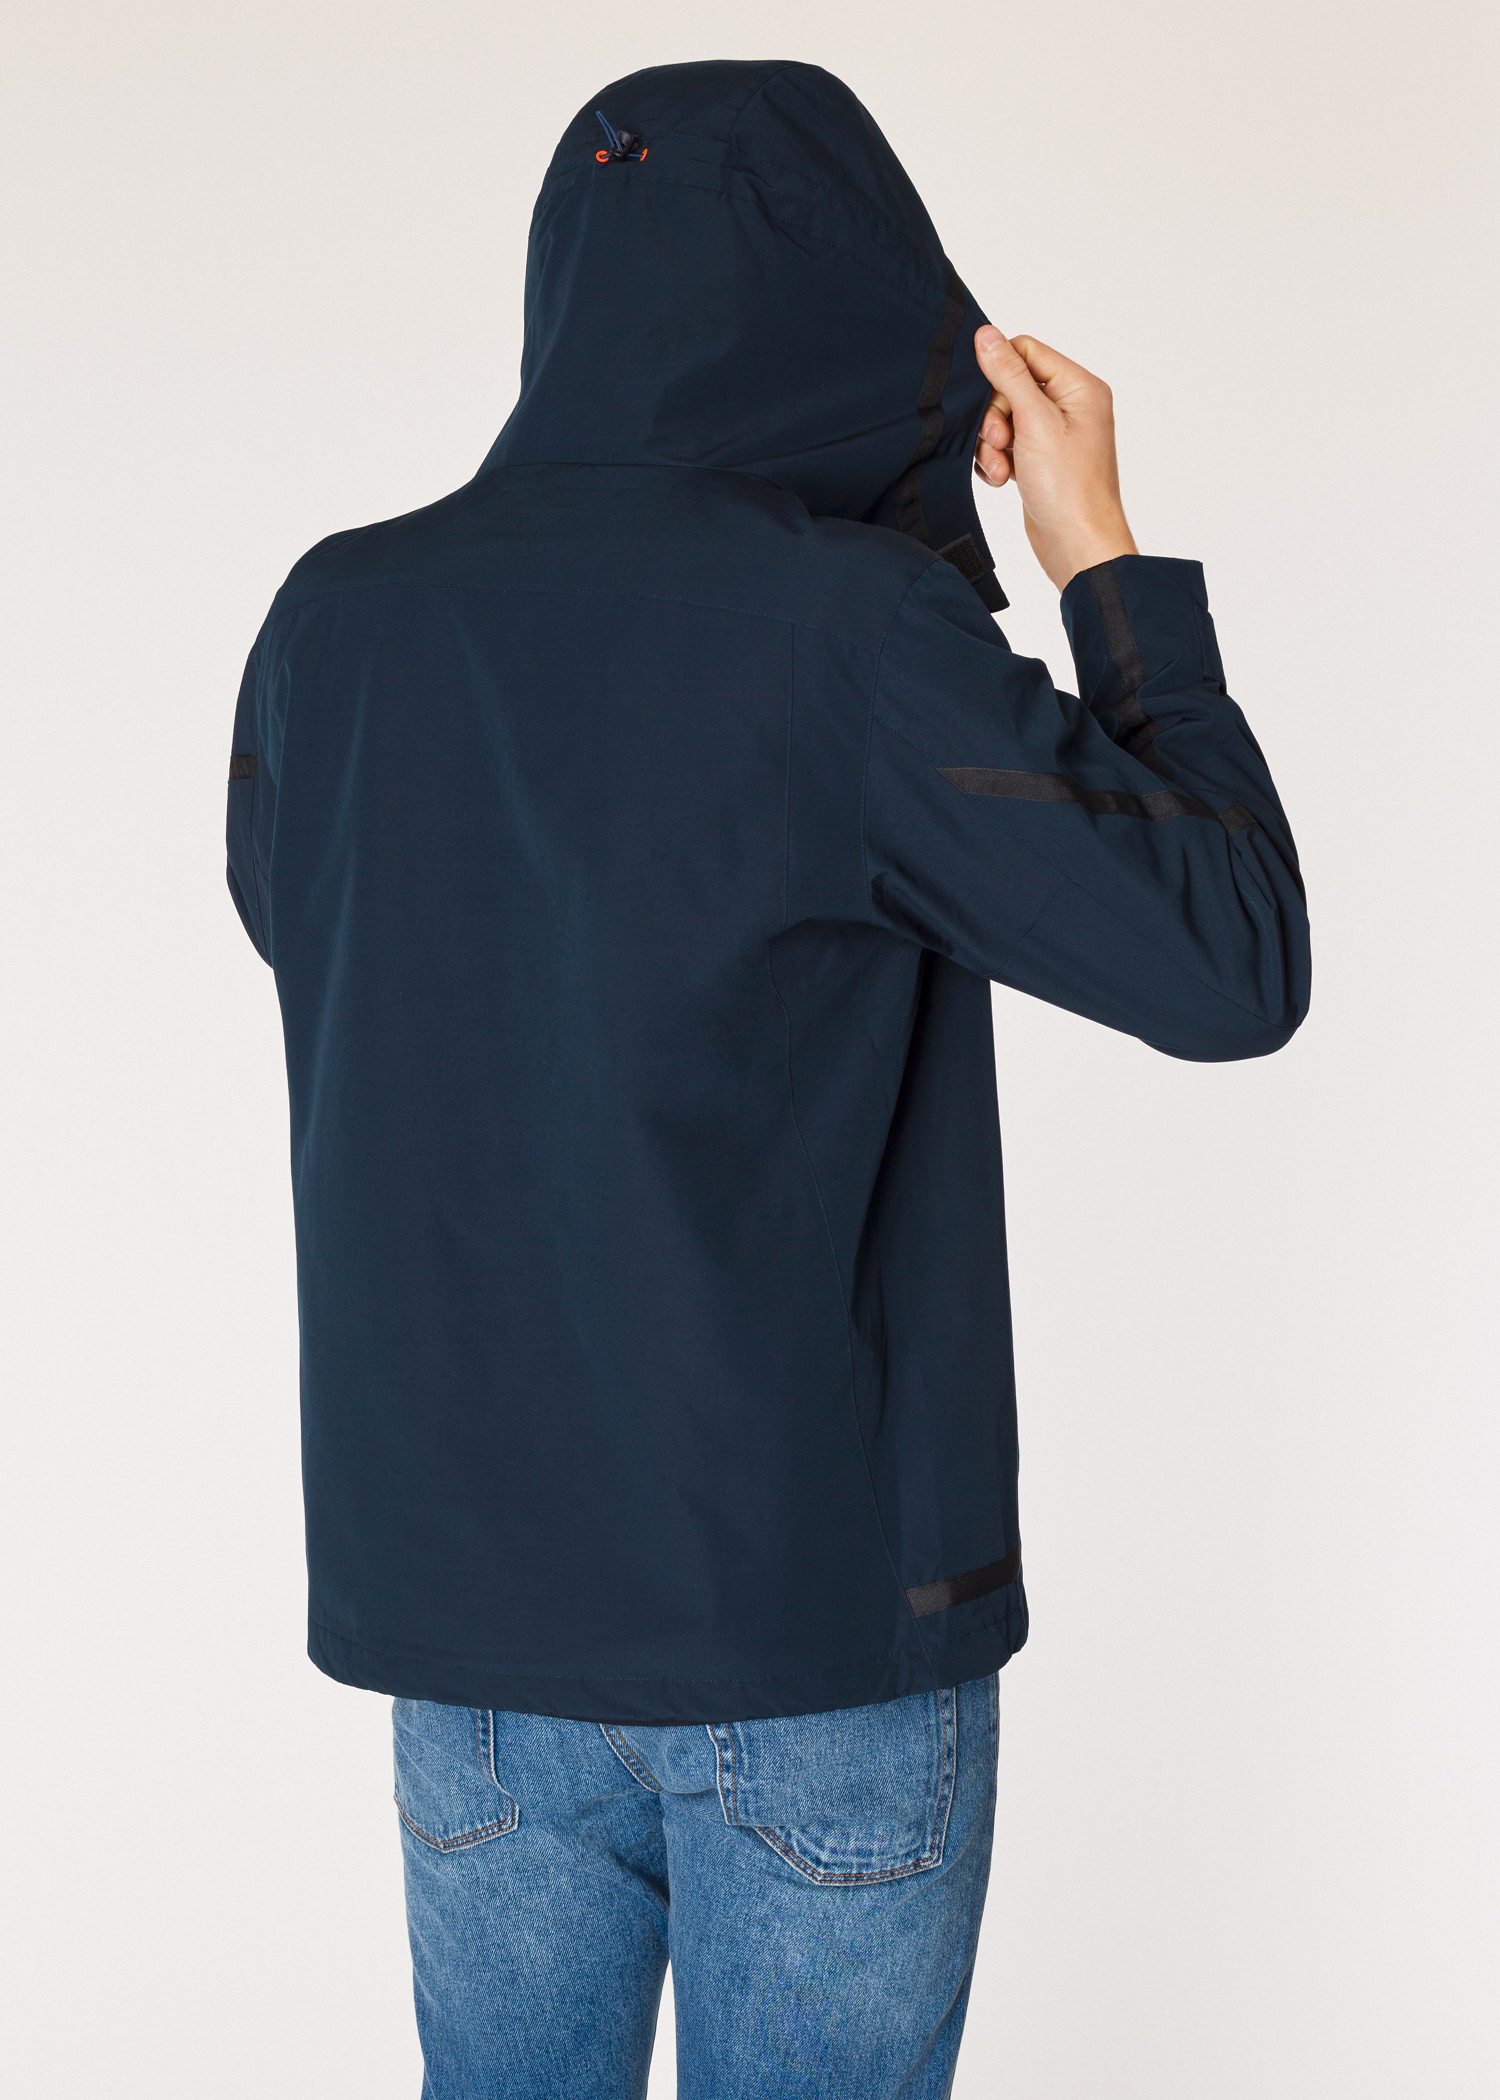 f317c1eaa35485 Model back view - Men's Navy Half-Zip Showerproof Poly-Cotton Anorak Paul  Smith